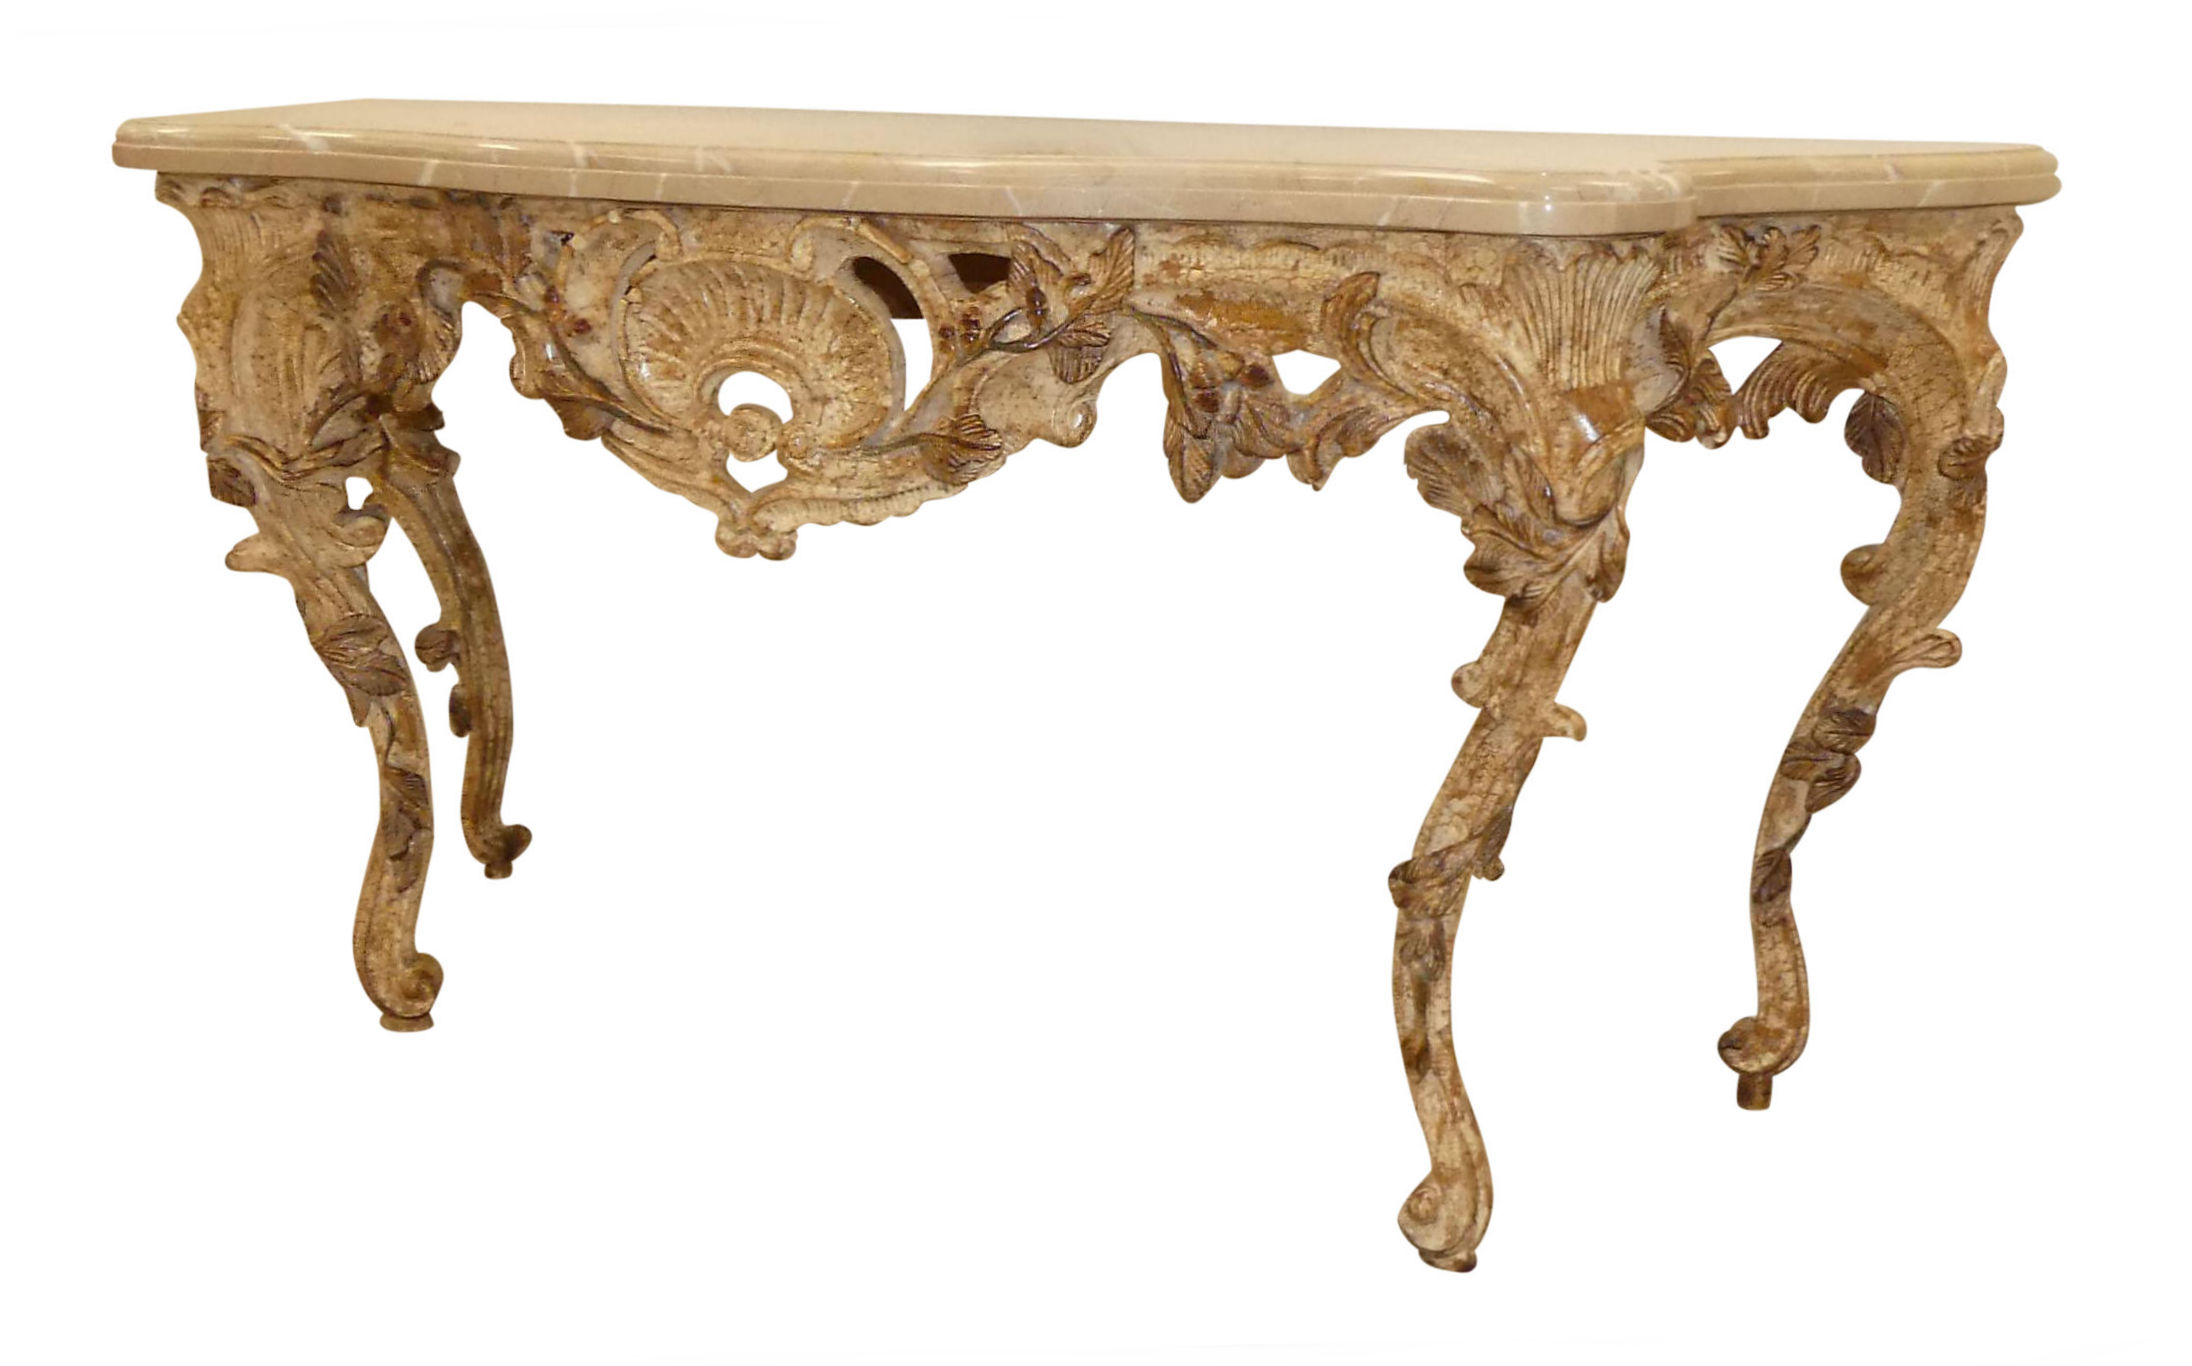 SOLD  Marble Top French Transitional Carved Wood Console Table